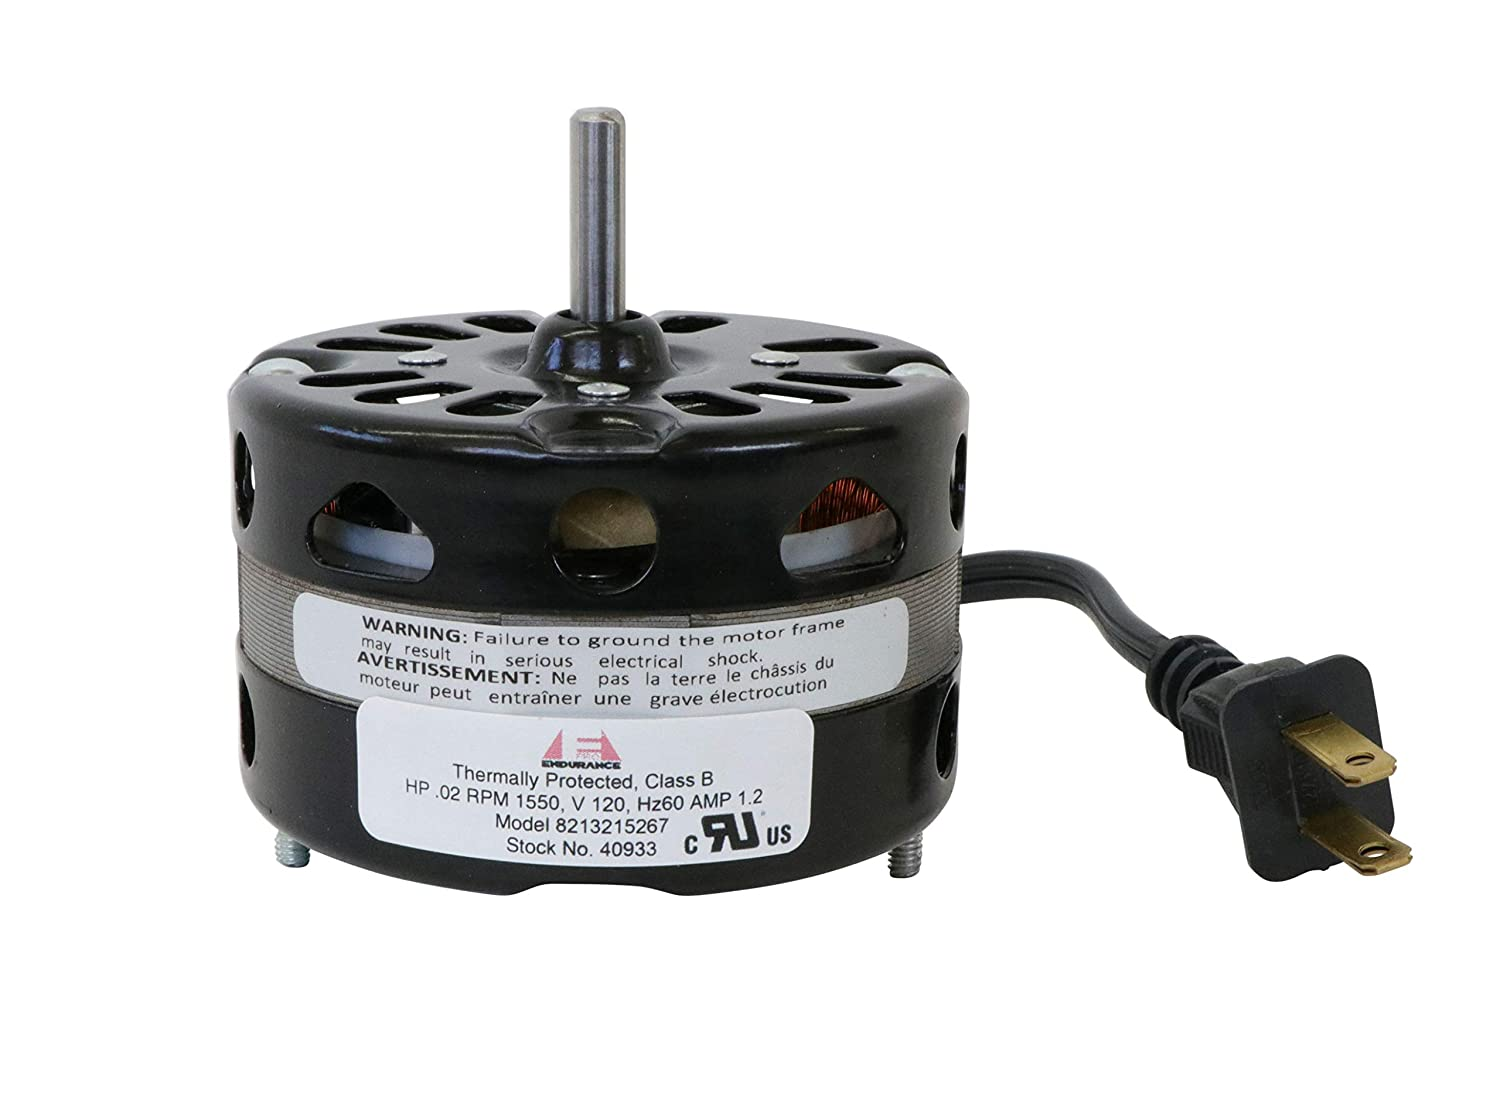 3.3 Inch Diameter Vent Fan Motor Direct Replacement For Nutone/Broan by Endurance Pro